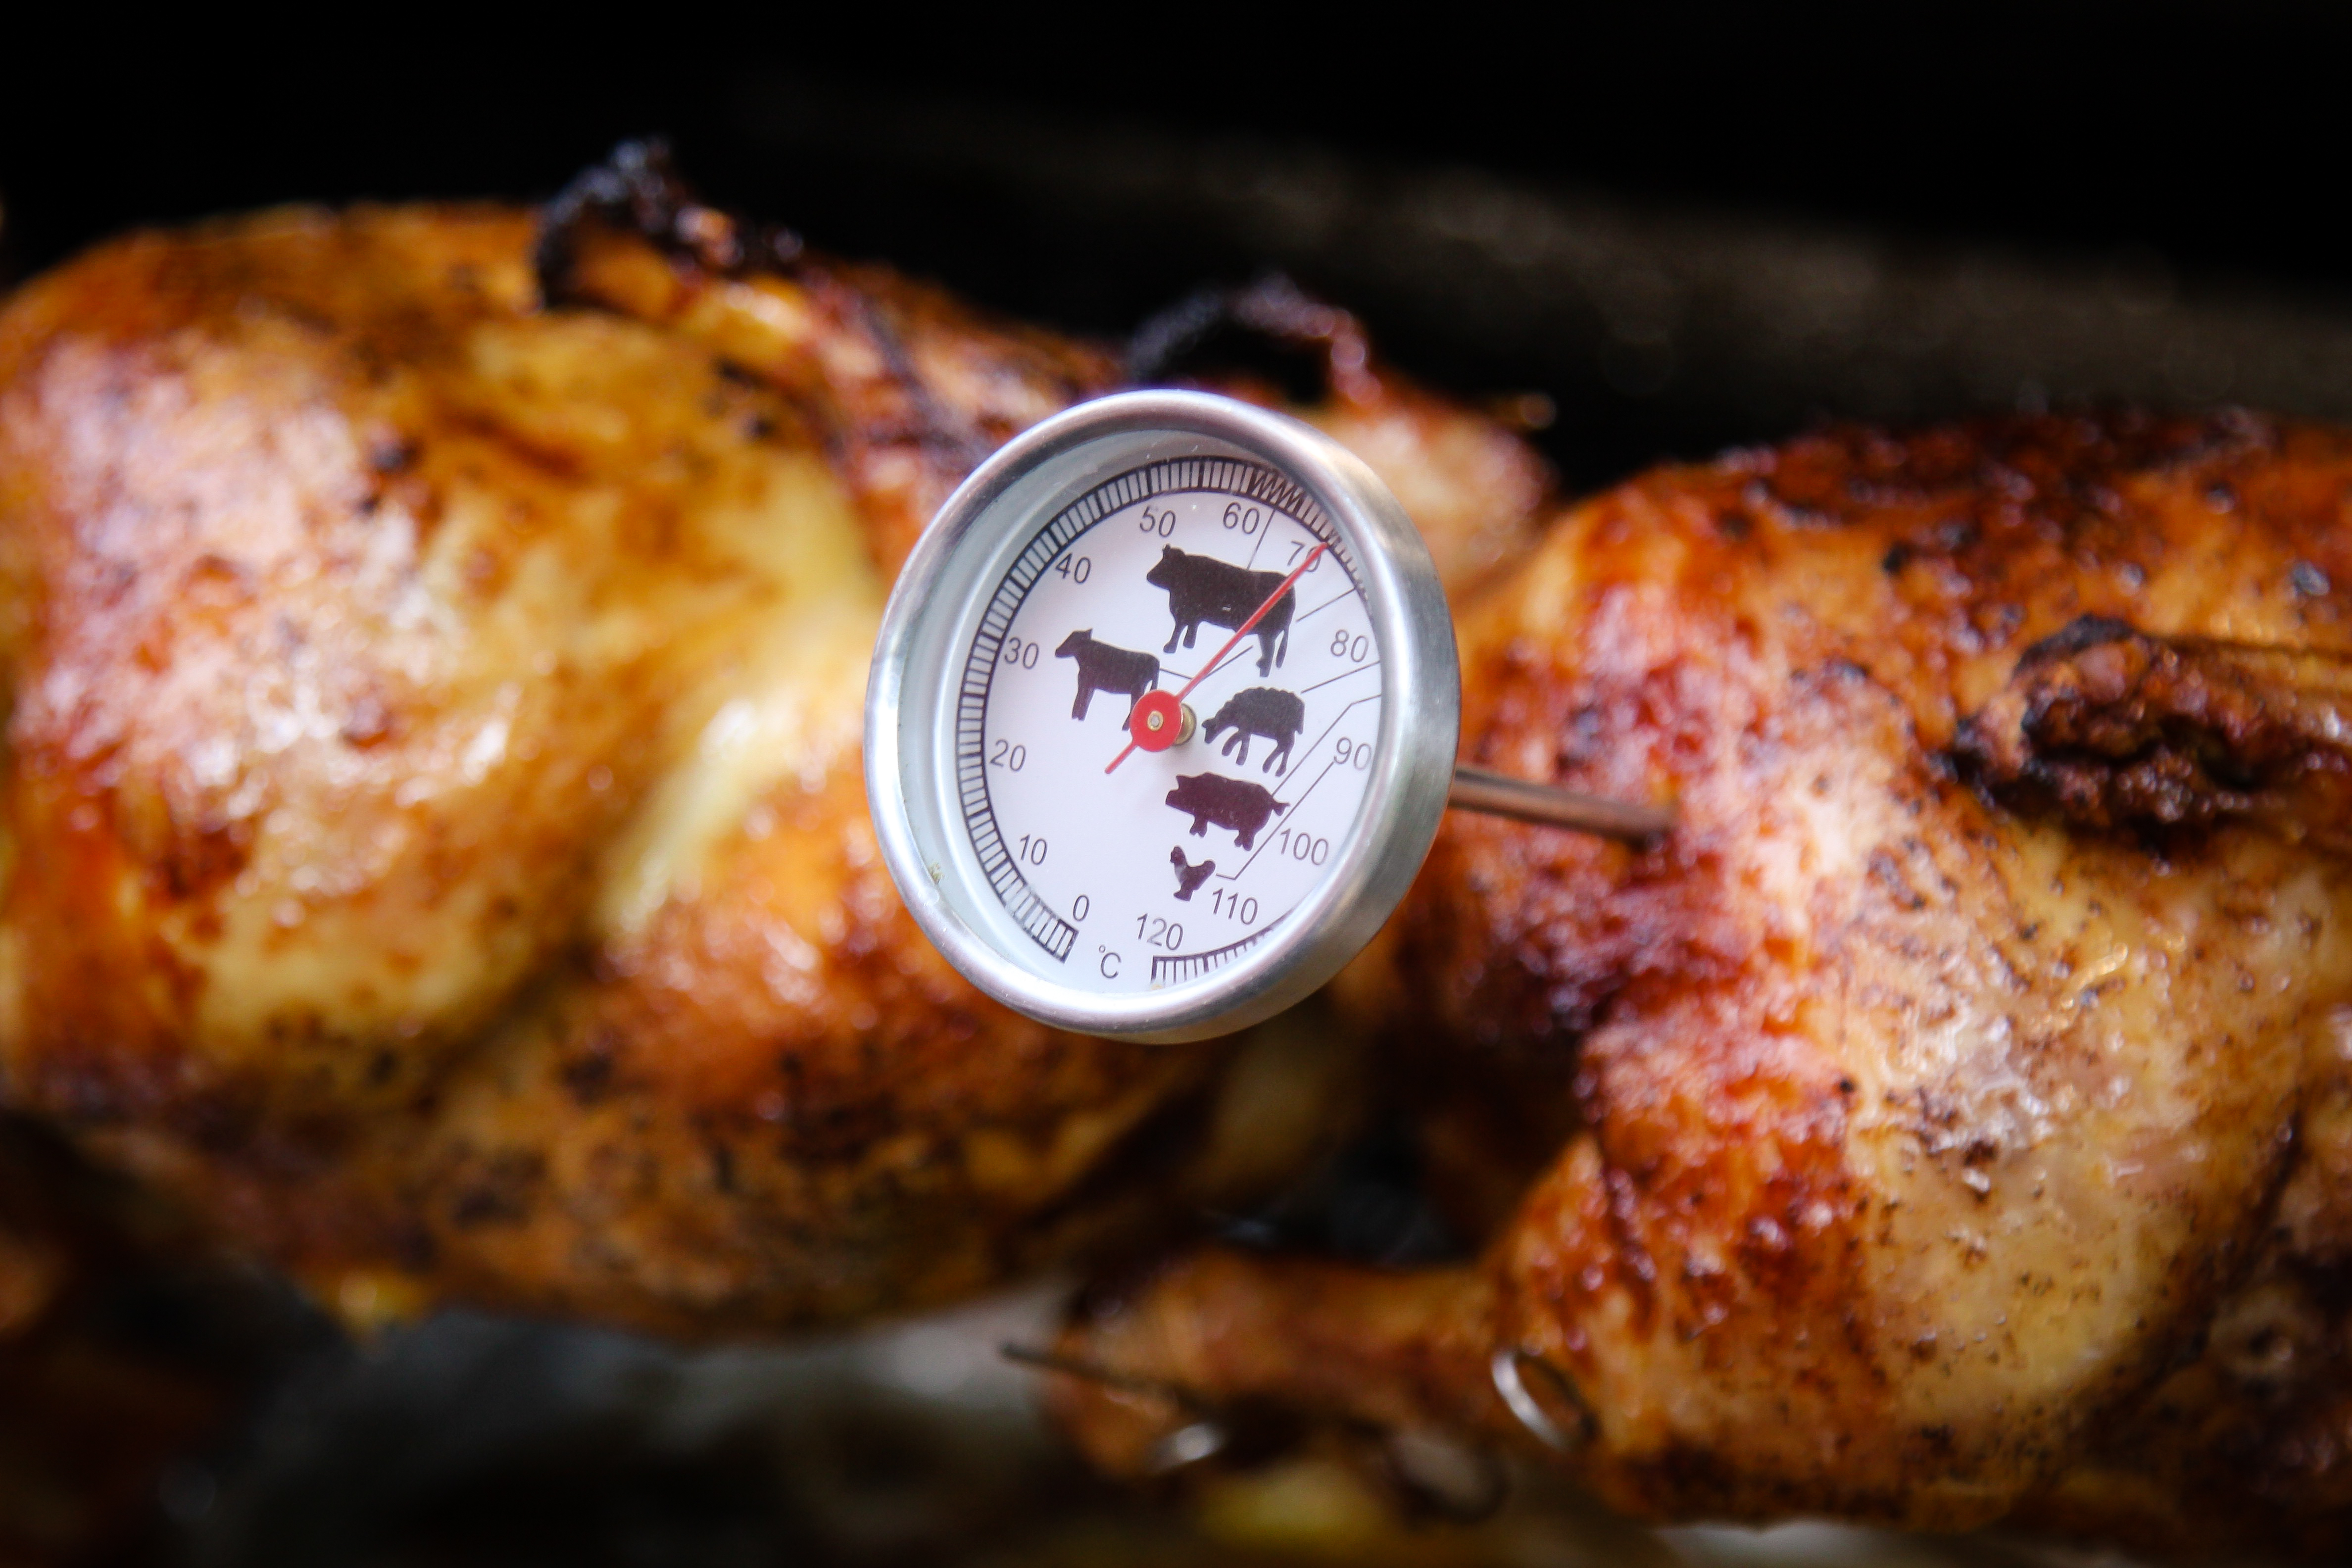 Grilled chicken and meat thermometer